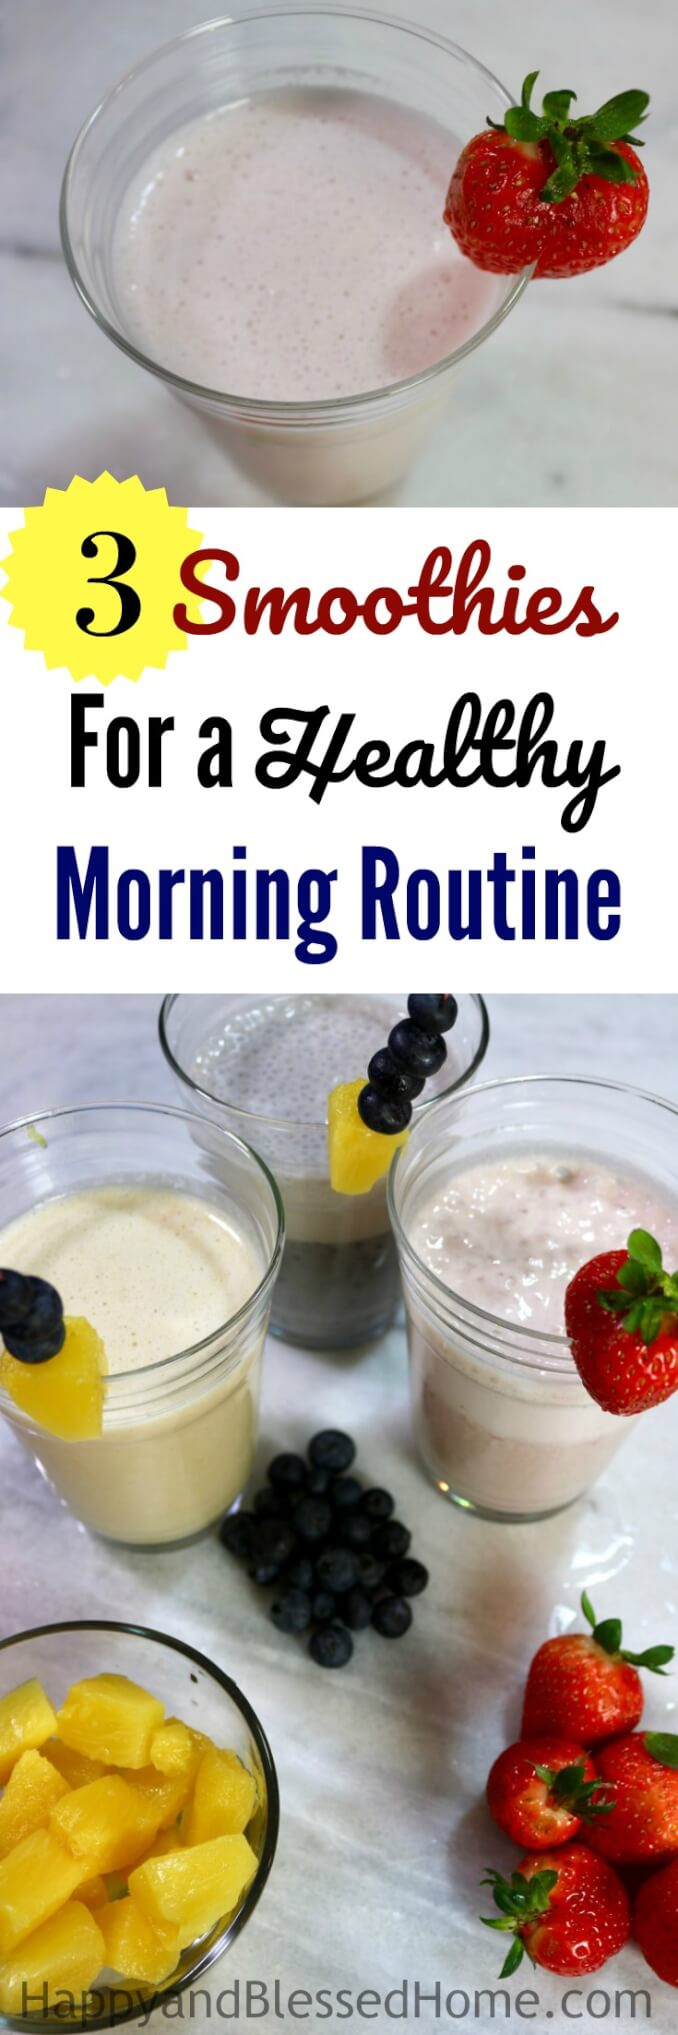 Mornings can be a little crazy. Now that my eldest is back in school, there are times when I barely have time to get myself dressed and ready for the day. Which is why I LOVE these 3 Easy Smoothie Recipes For A Healthy Morning Routine. Pineapple, strawberries, blueberries, and dairy-free milk and yogurt? Yes - please! Ad #ProgressIsPerfection #CBias